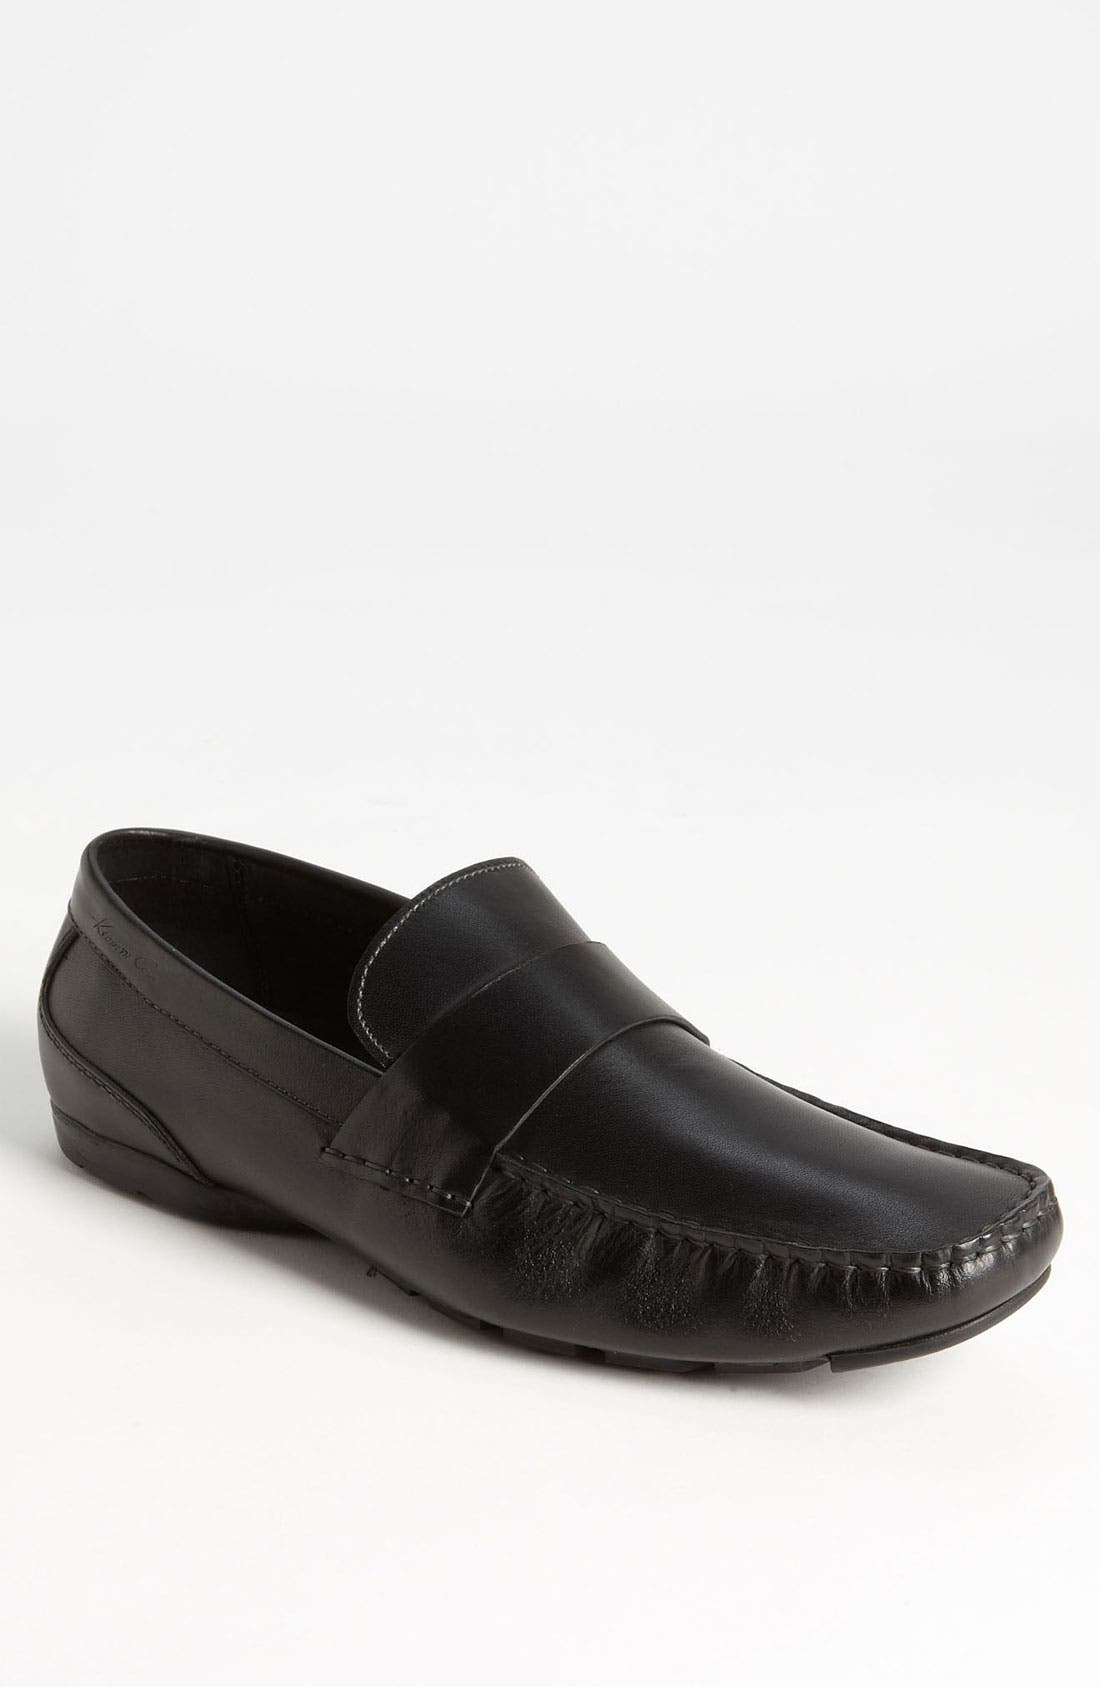 Main Image - Kenneth Cole New York 'Is-Land Jumper' Loafer